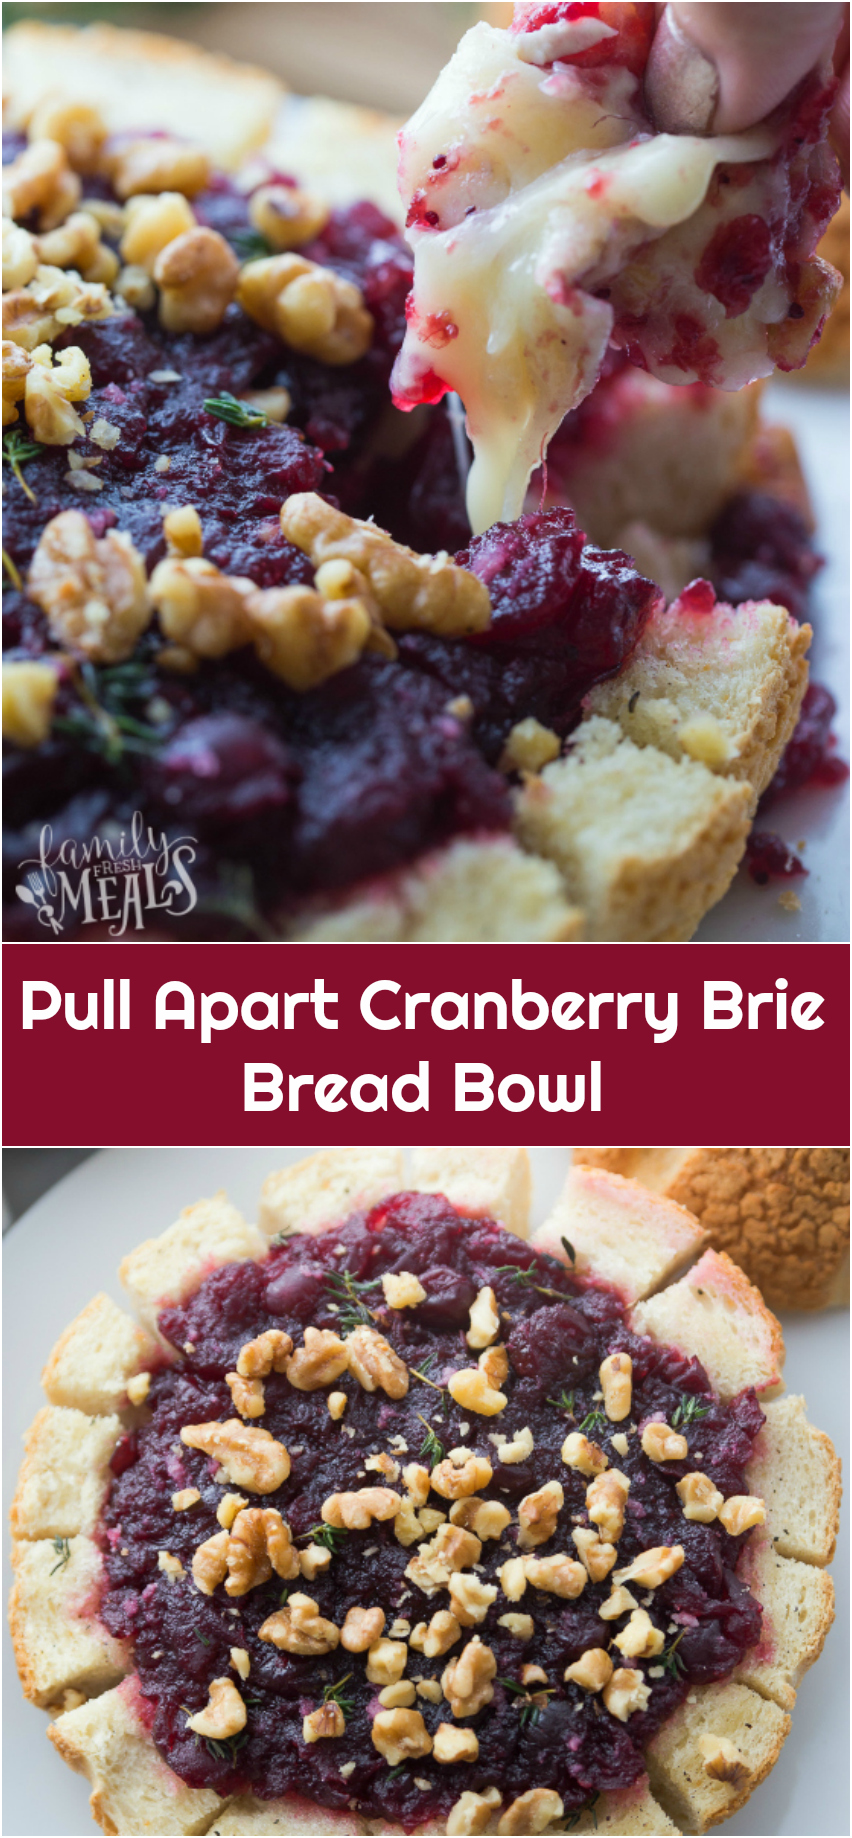 Pull Apart Cranberry Brie Bread Bowl - Family Fresh Meals